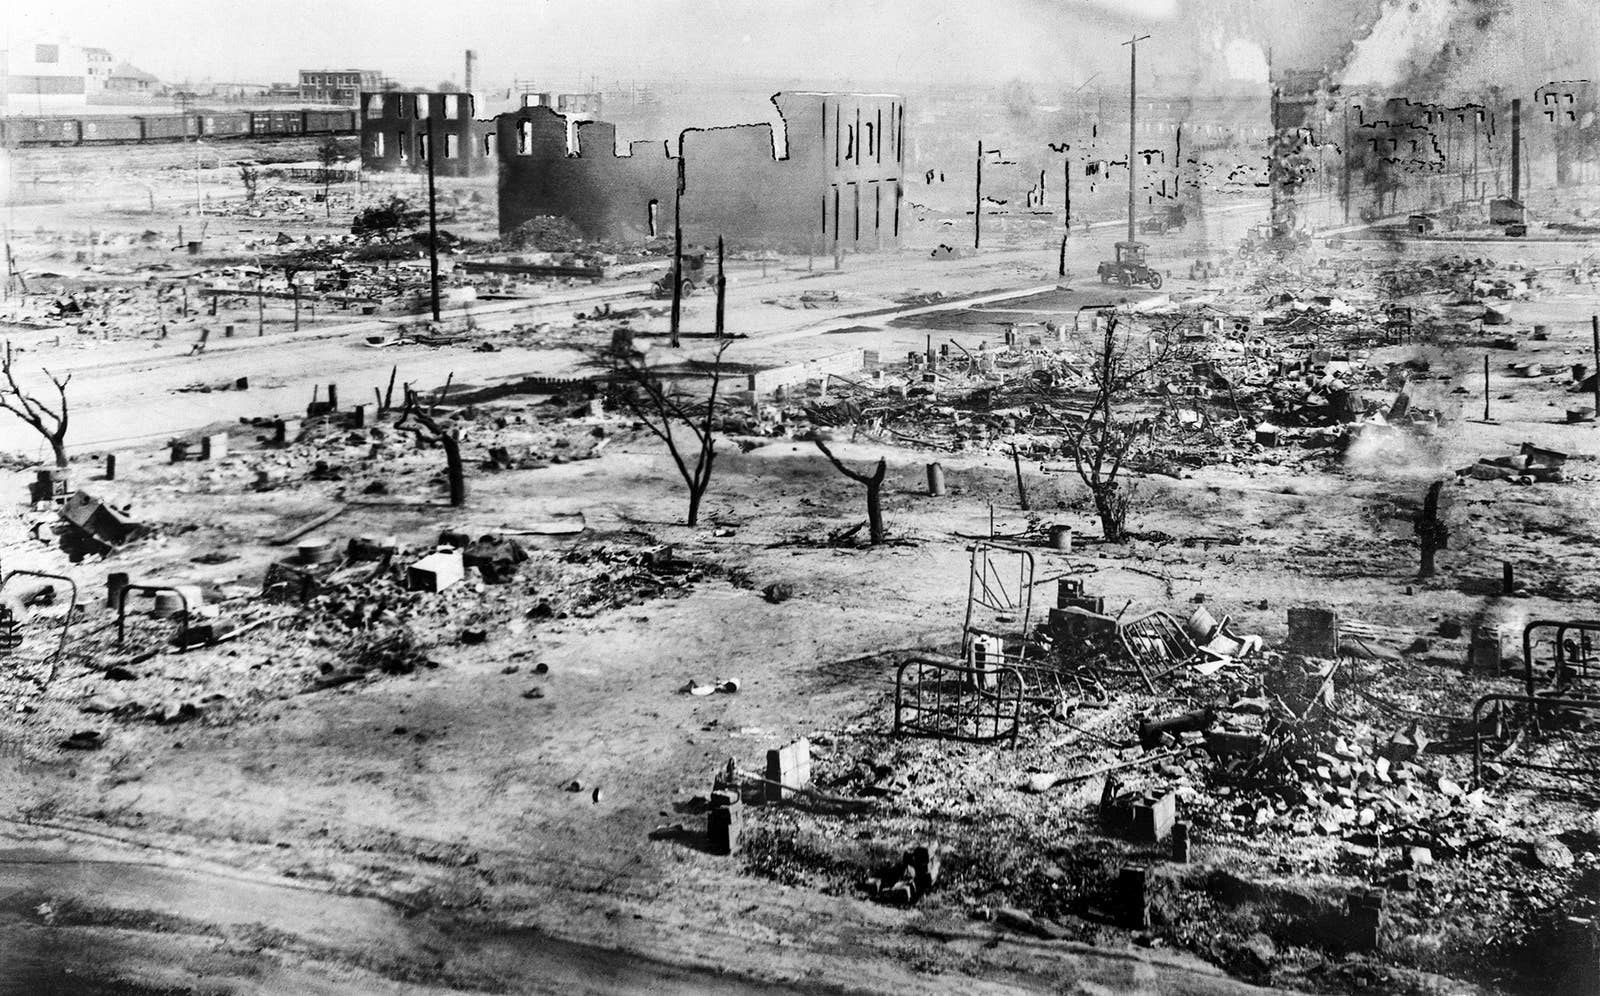 A scorched-earth scene of a town destroyed